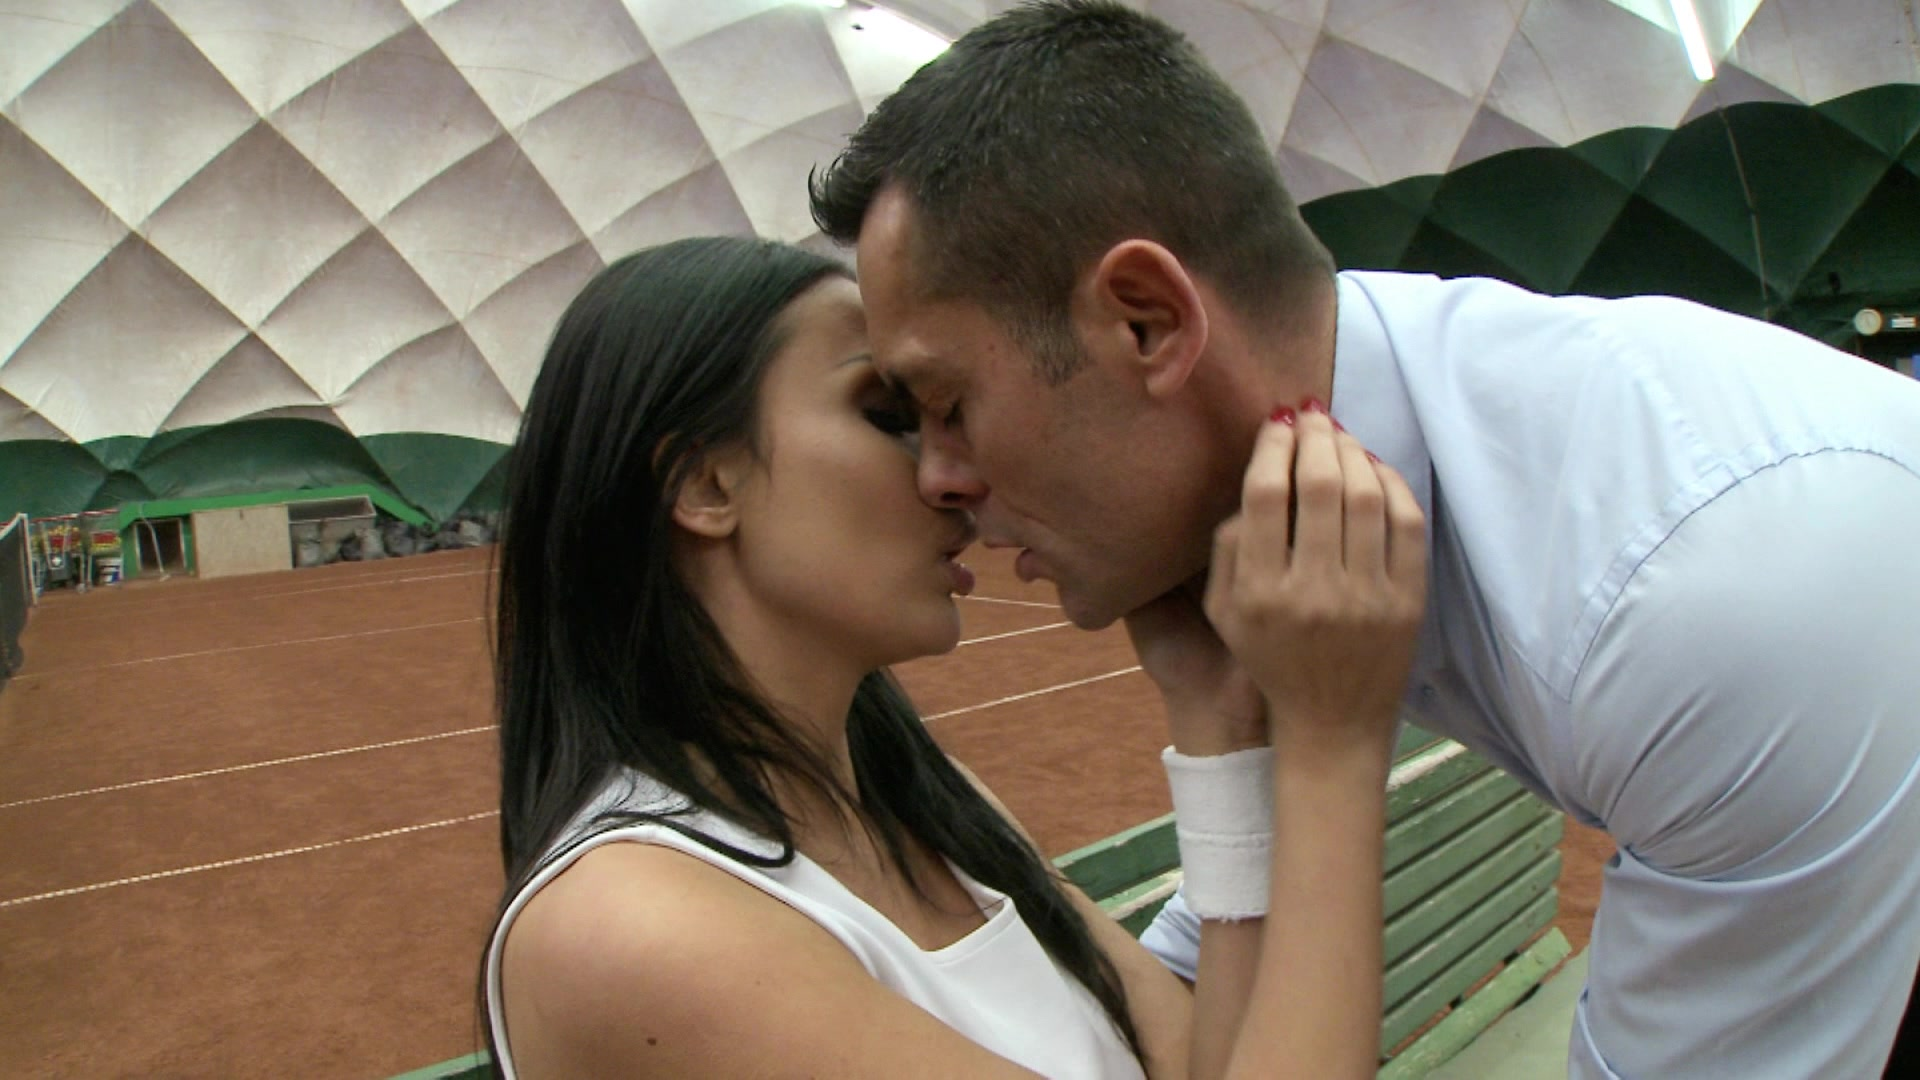 Scene with Anissa Kate - image 4 out of 20